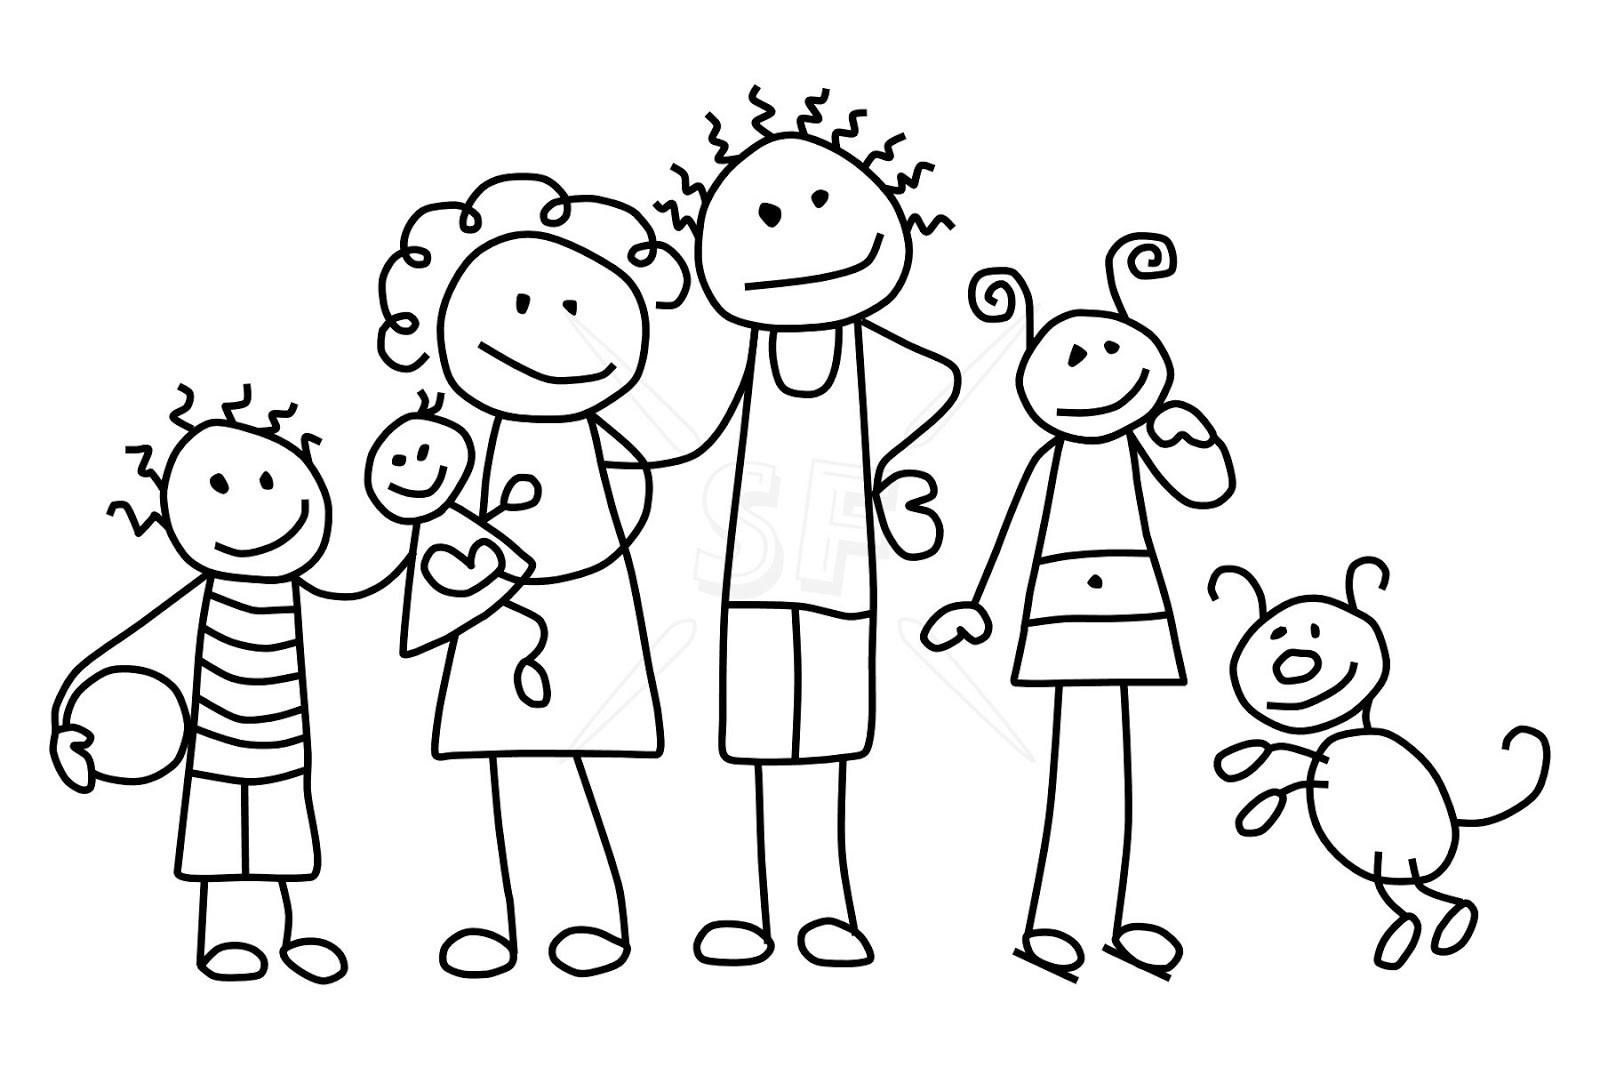 Figure clipart 7 person family. Stick drawing at getdrawings